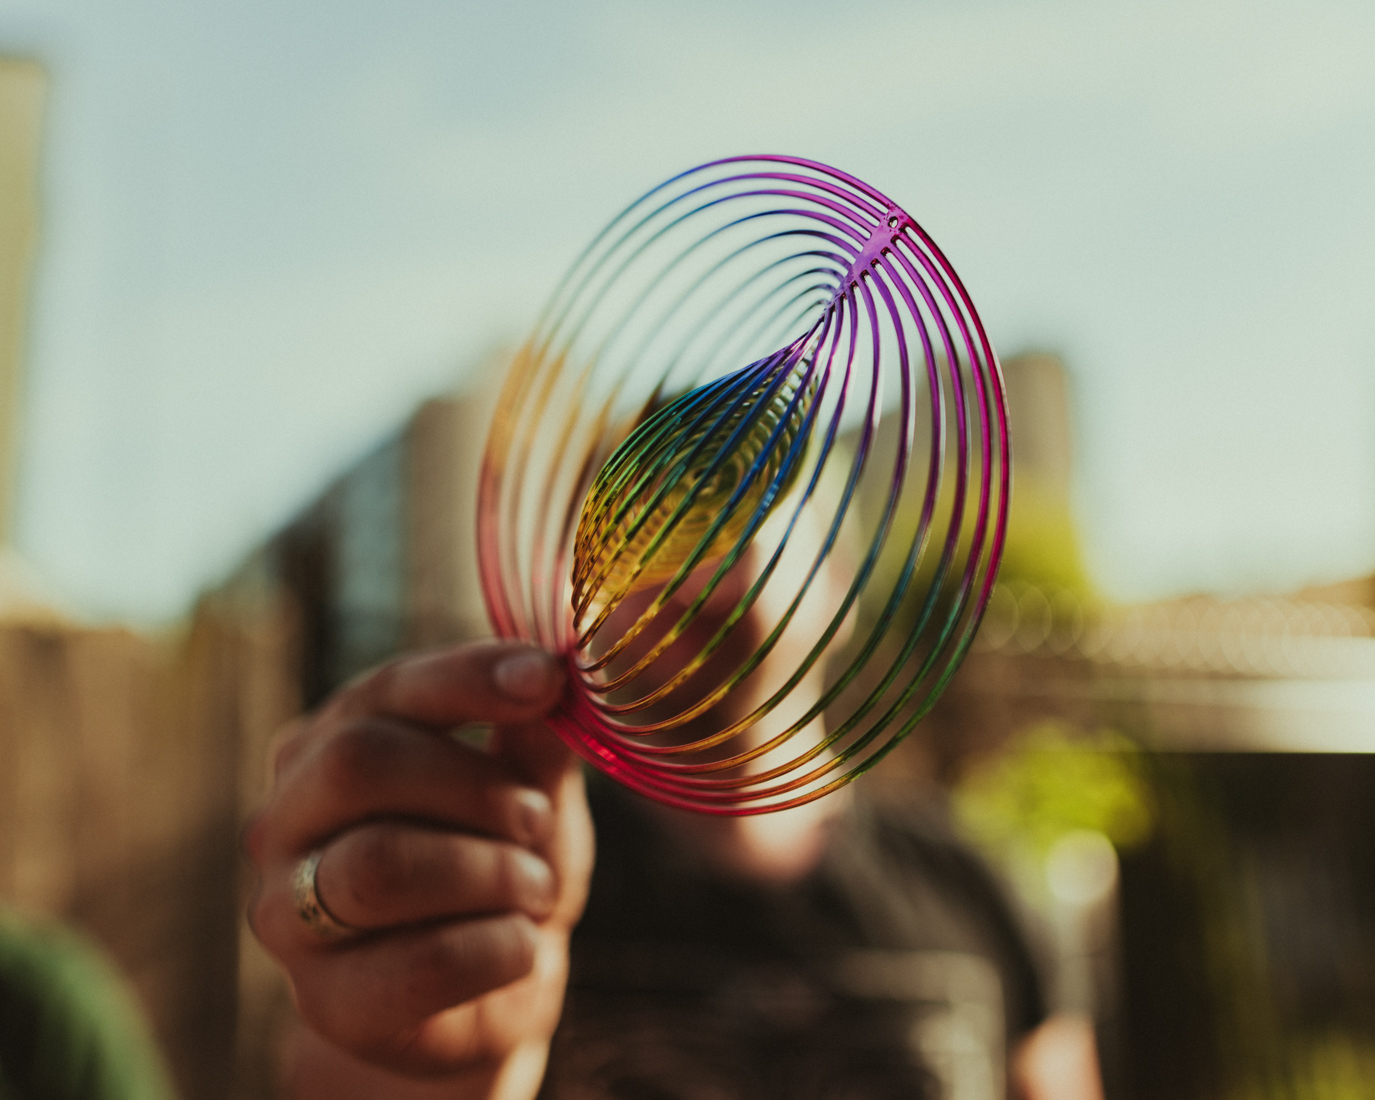 prop #2: rainbow windcatcher thing - Woelfel used one in his video, too, they're really amazing to use!